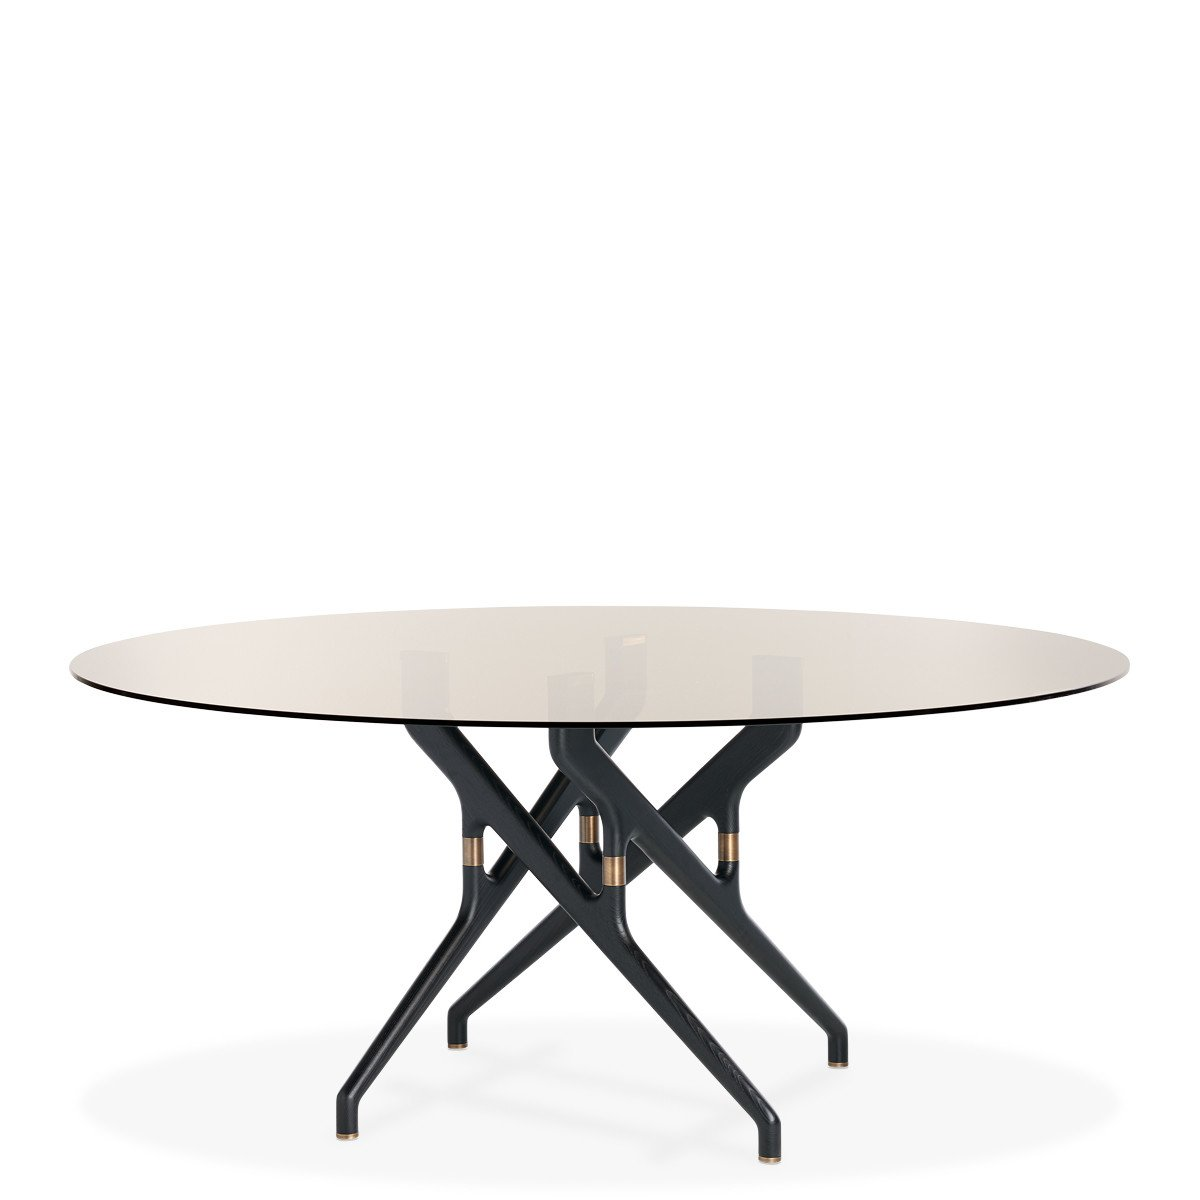 Torso Table dining from Potocco, designed by Gianluigi Landoni